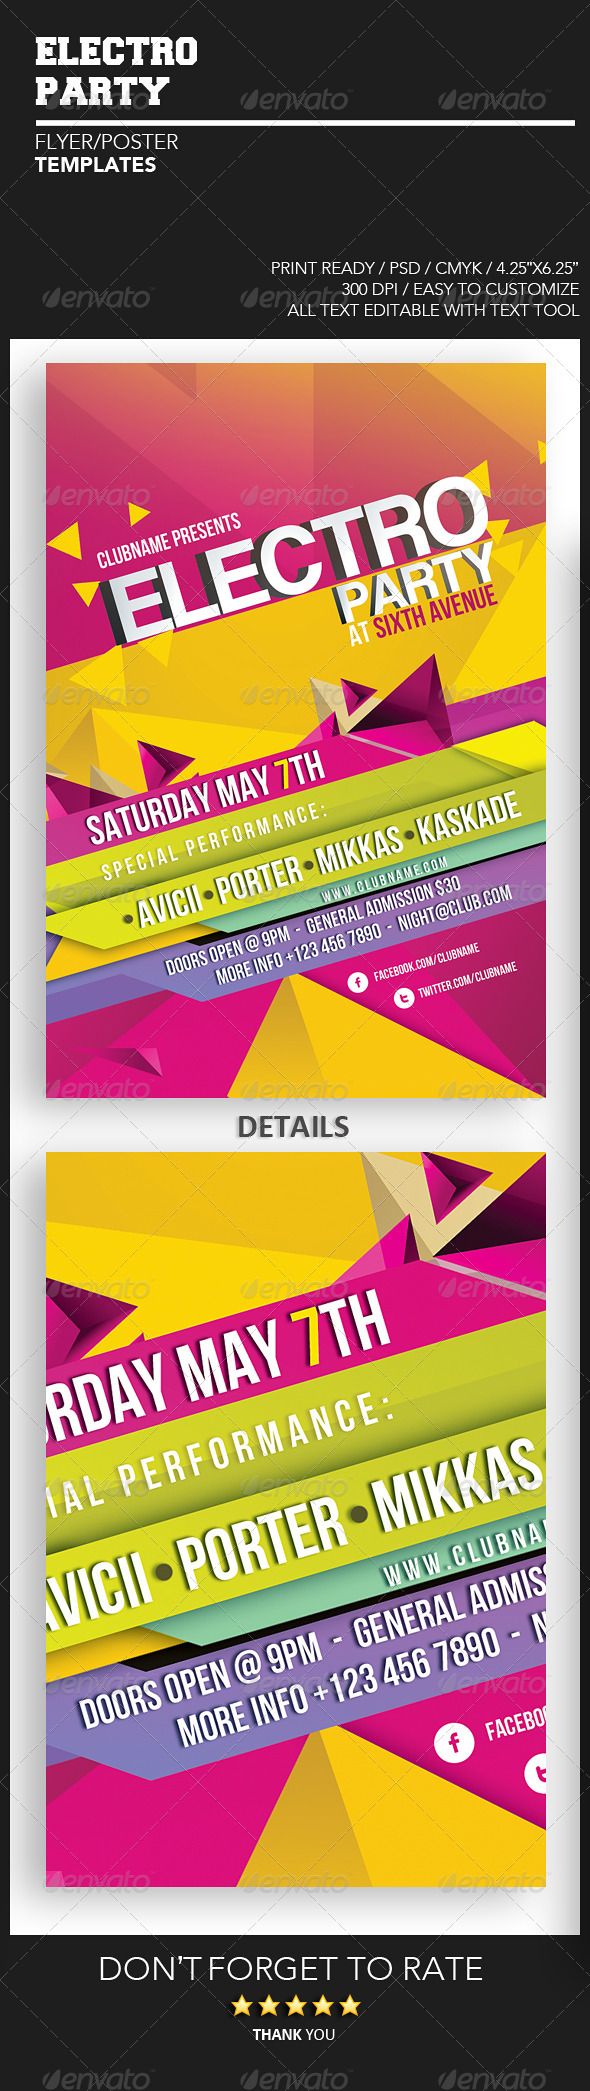 Electro Party Flyer Template - Events Flyers